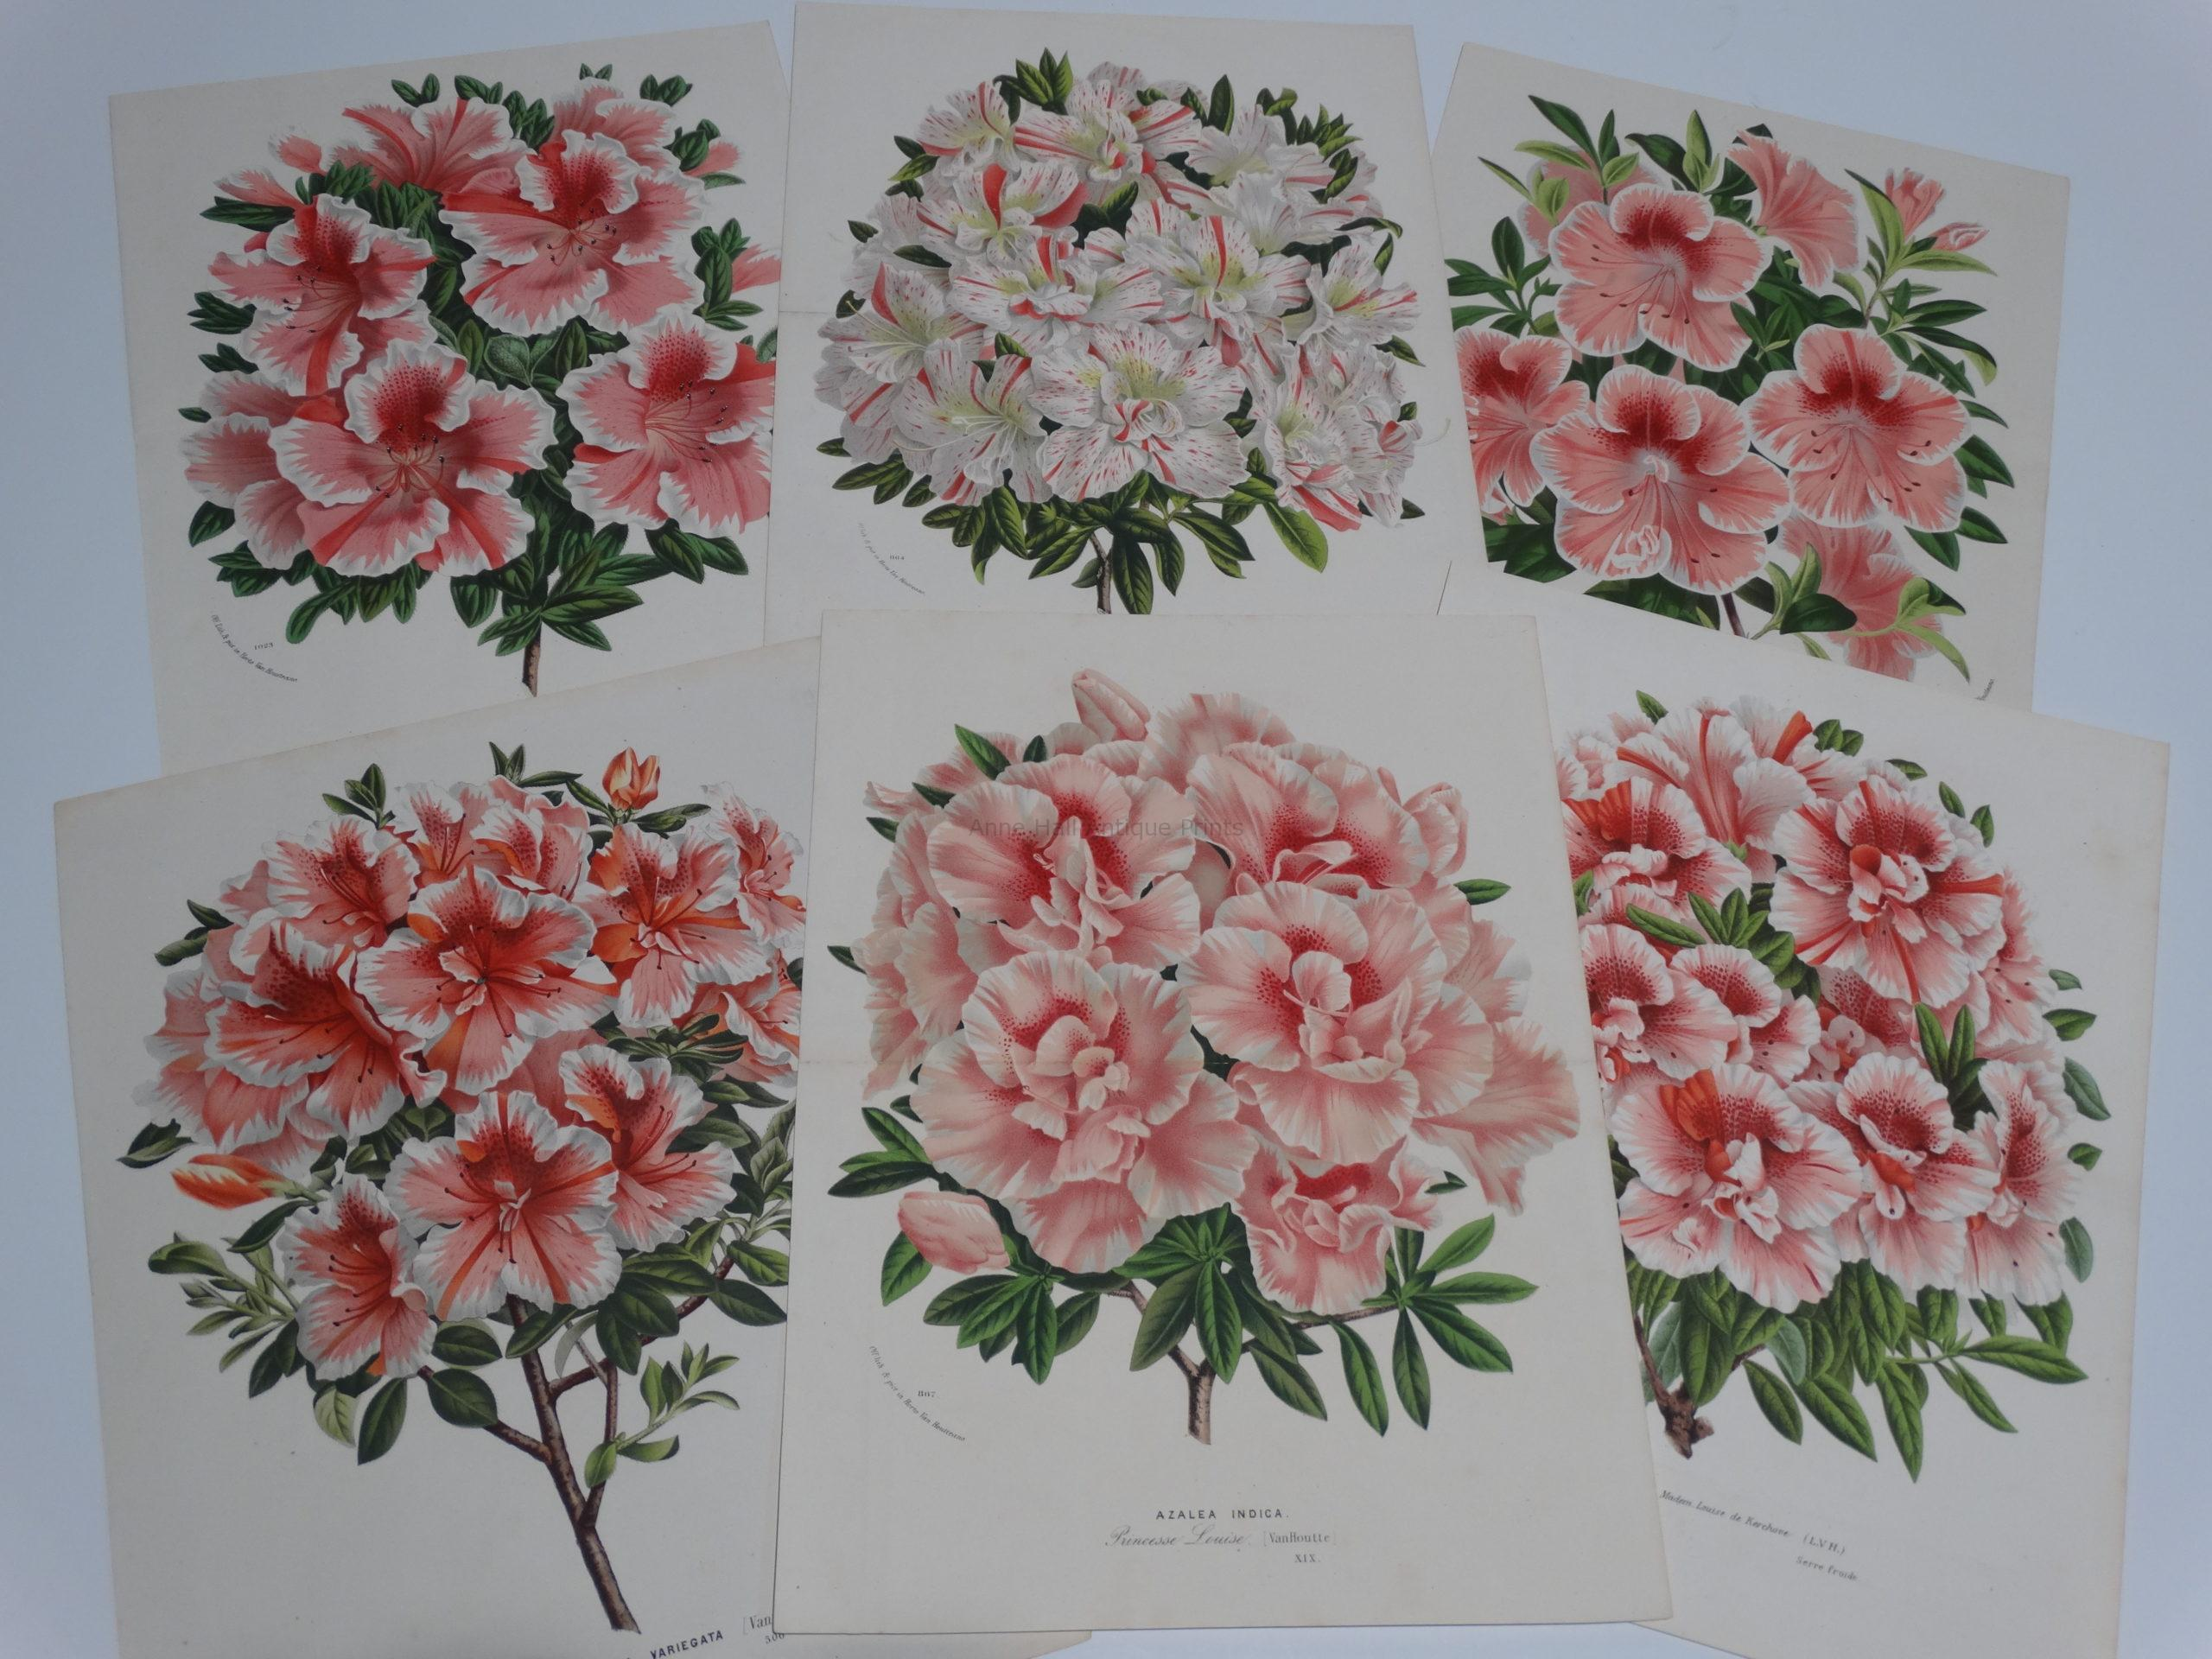 Exquisite collection of 19th century antique lithographs engravings of azaleas rhododendrons.